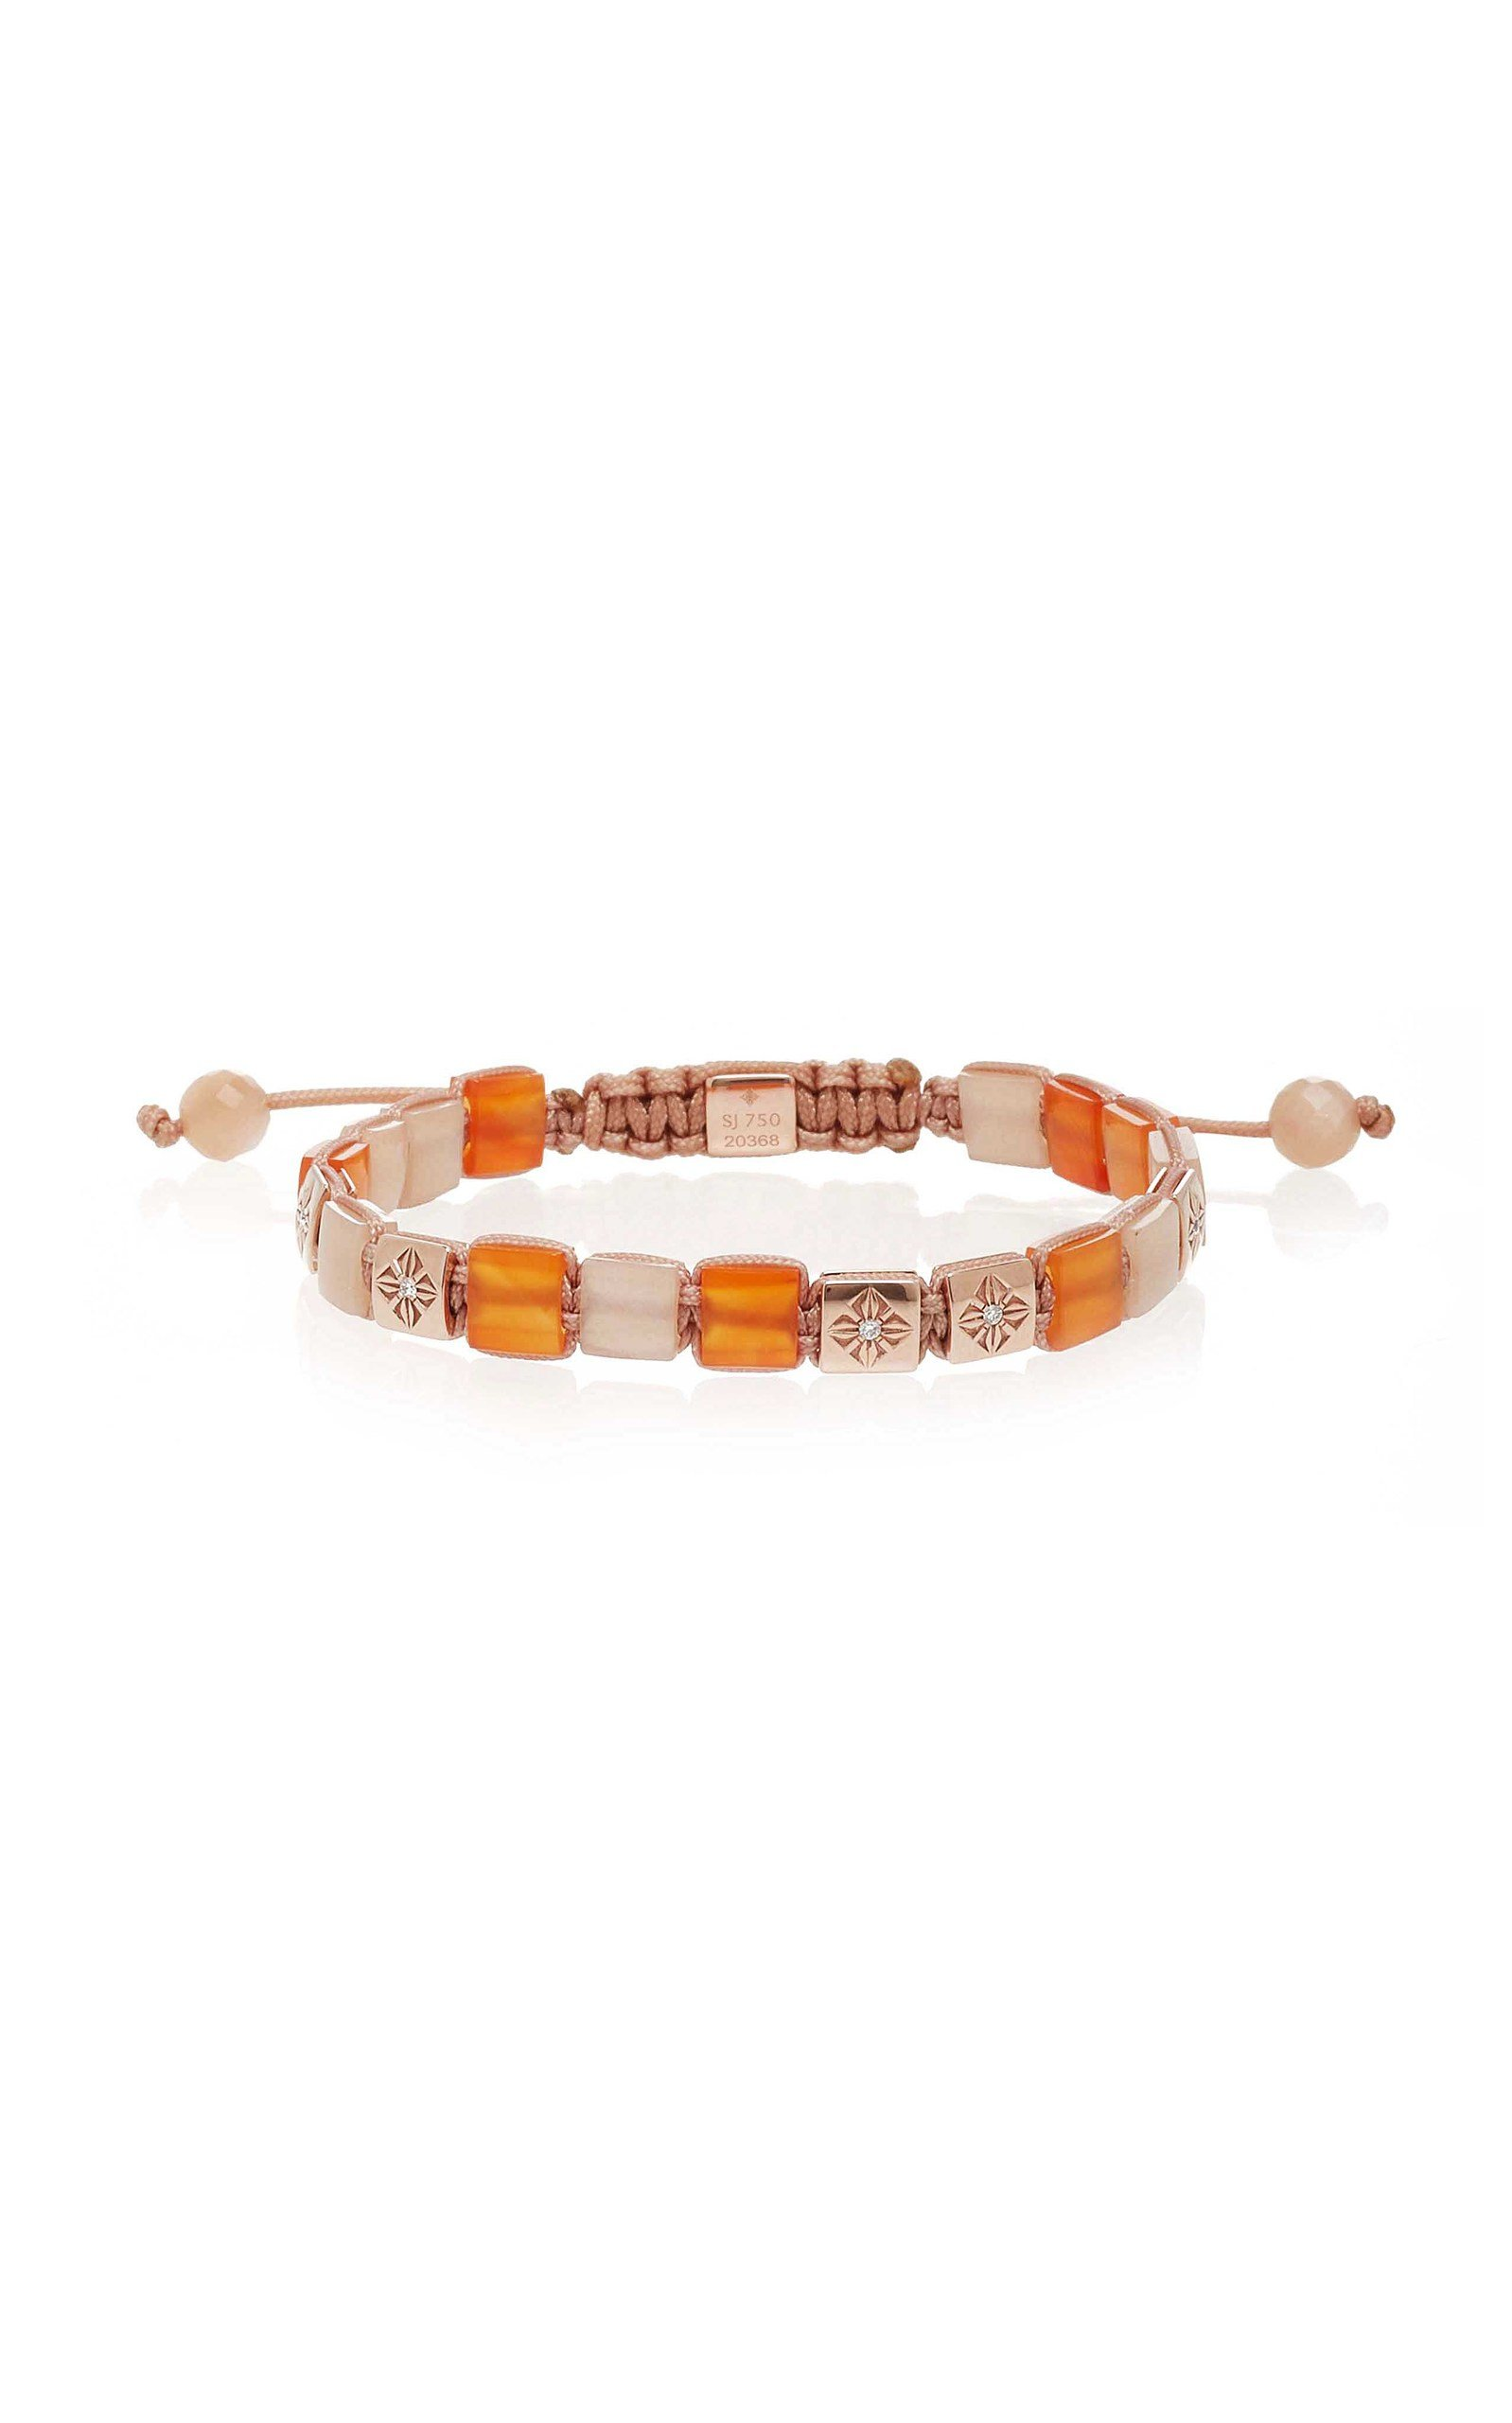 SHAMBALLA JEWELS 6MM LOCK CARNELIAN BRACELET